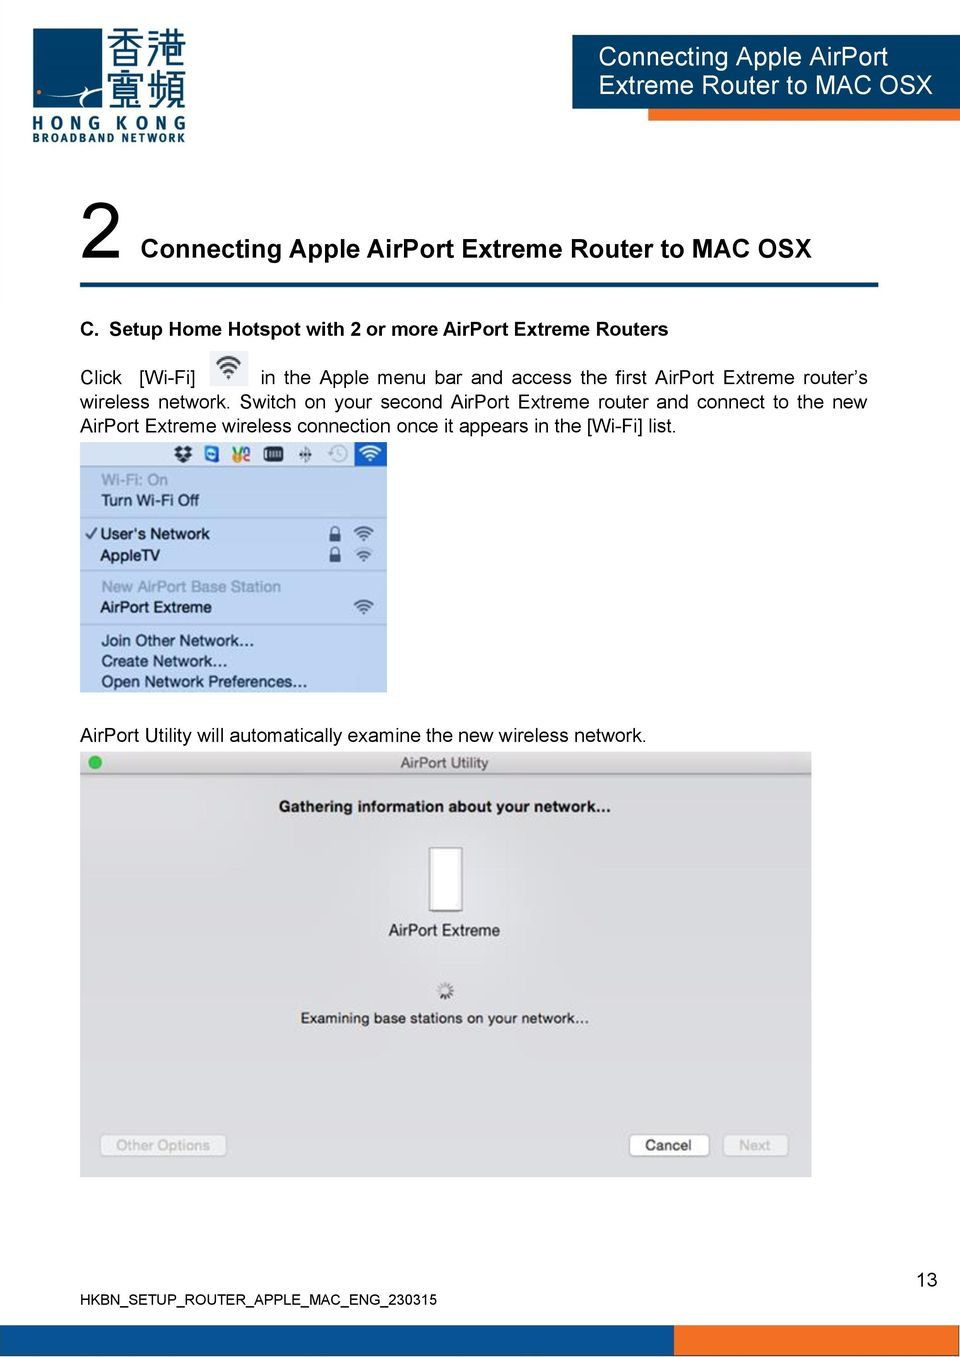 access the first AirPort Extreme router s wireless network.